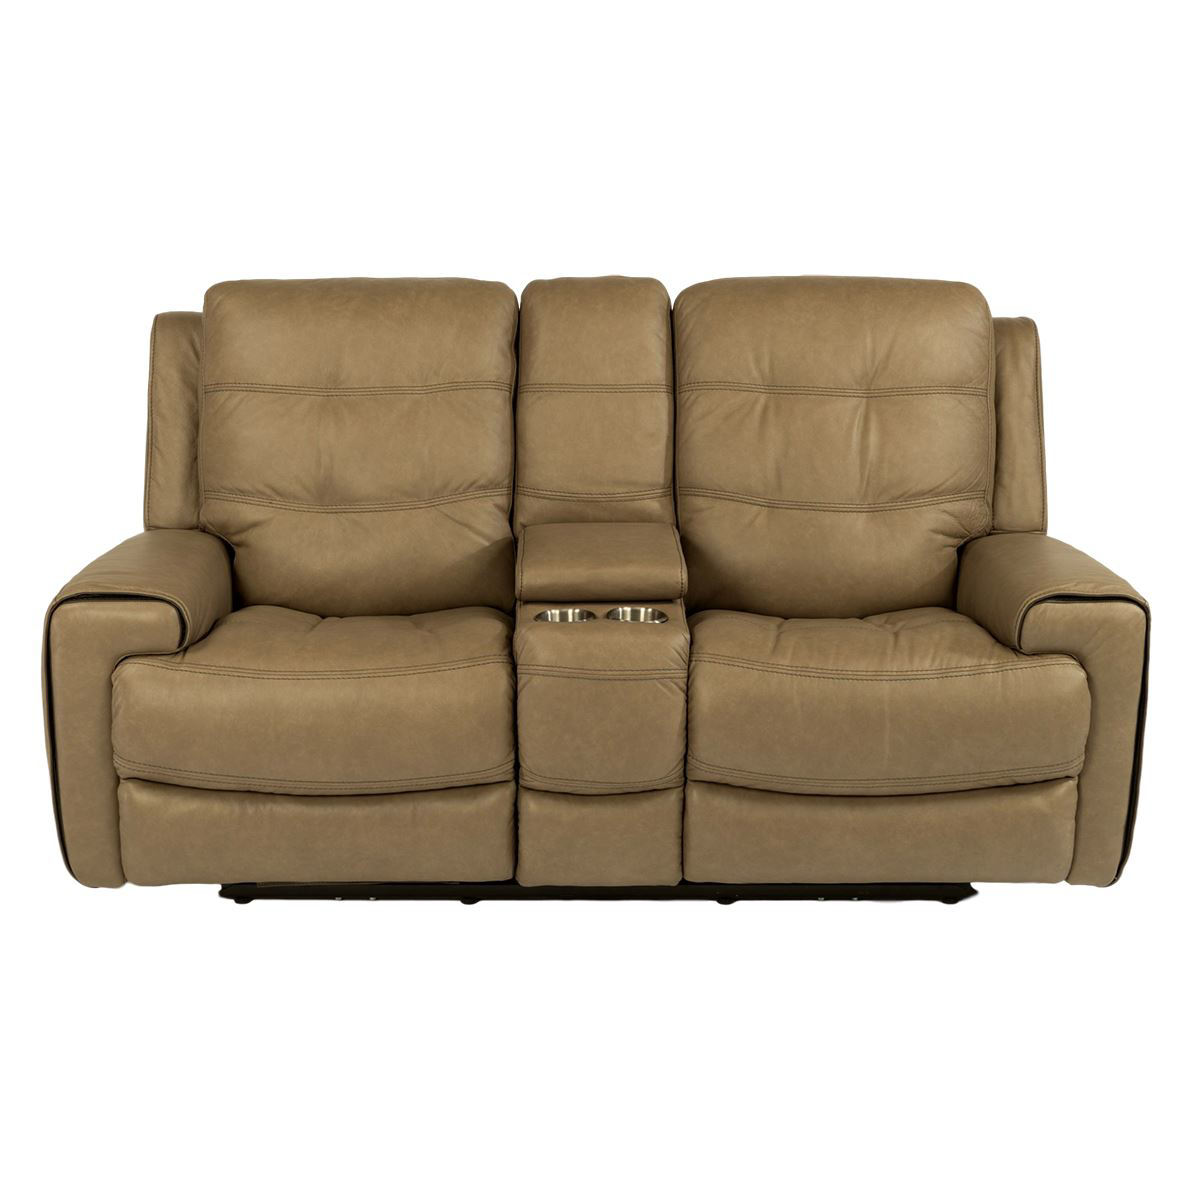 Picture of Wicklow Power Reclining Leather Loveseat with Console and Power Headrest